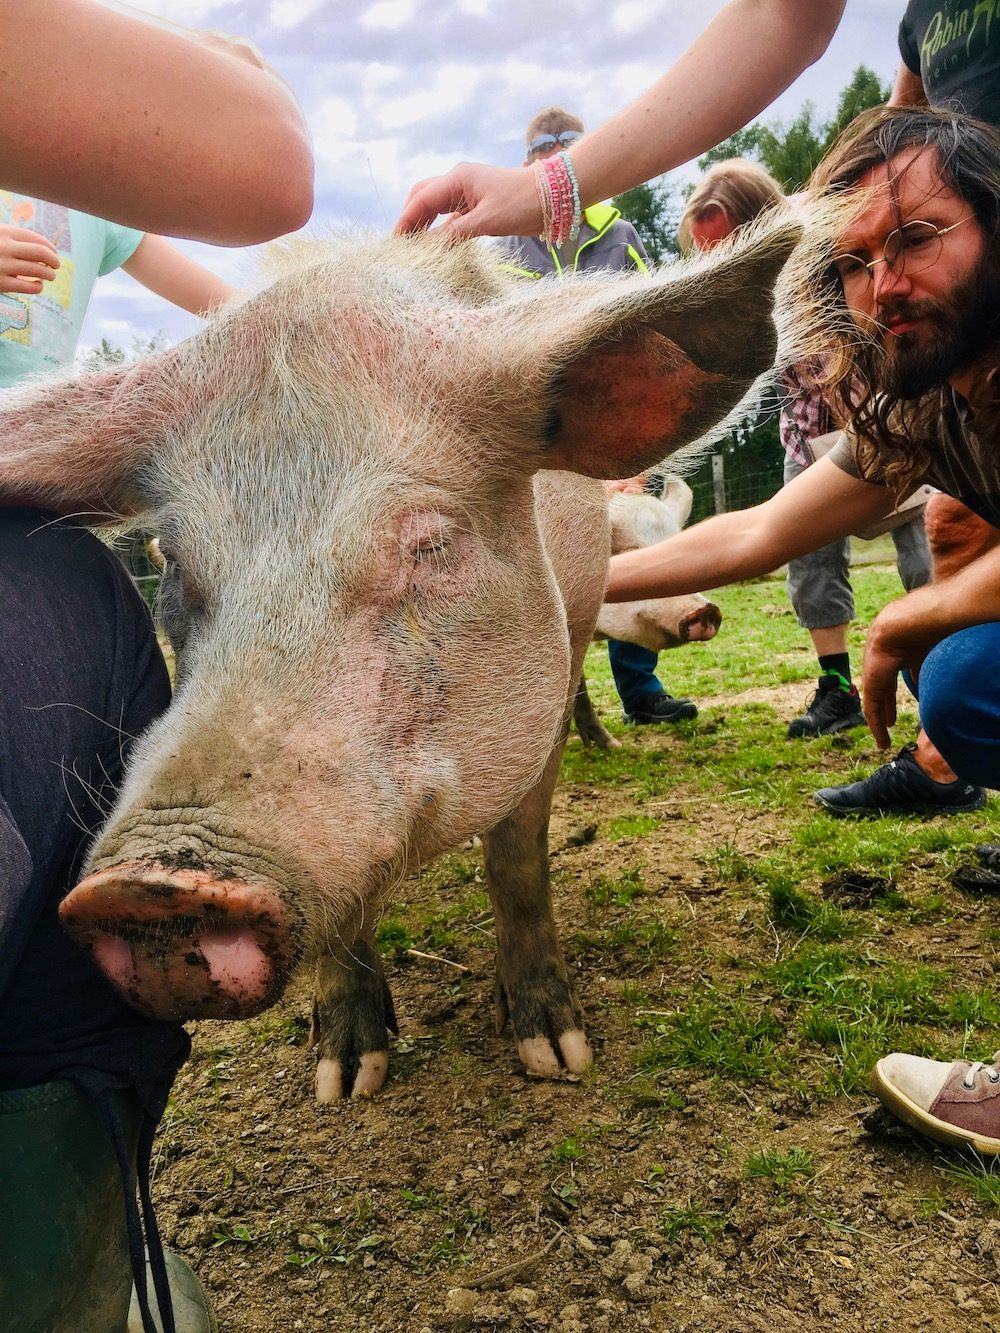 Stroking a pig at a sanctuary